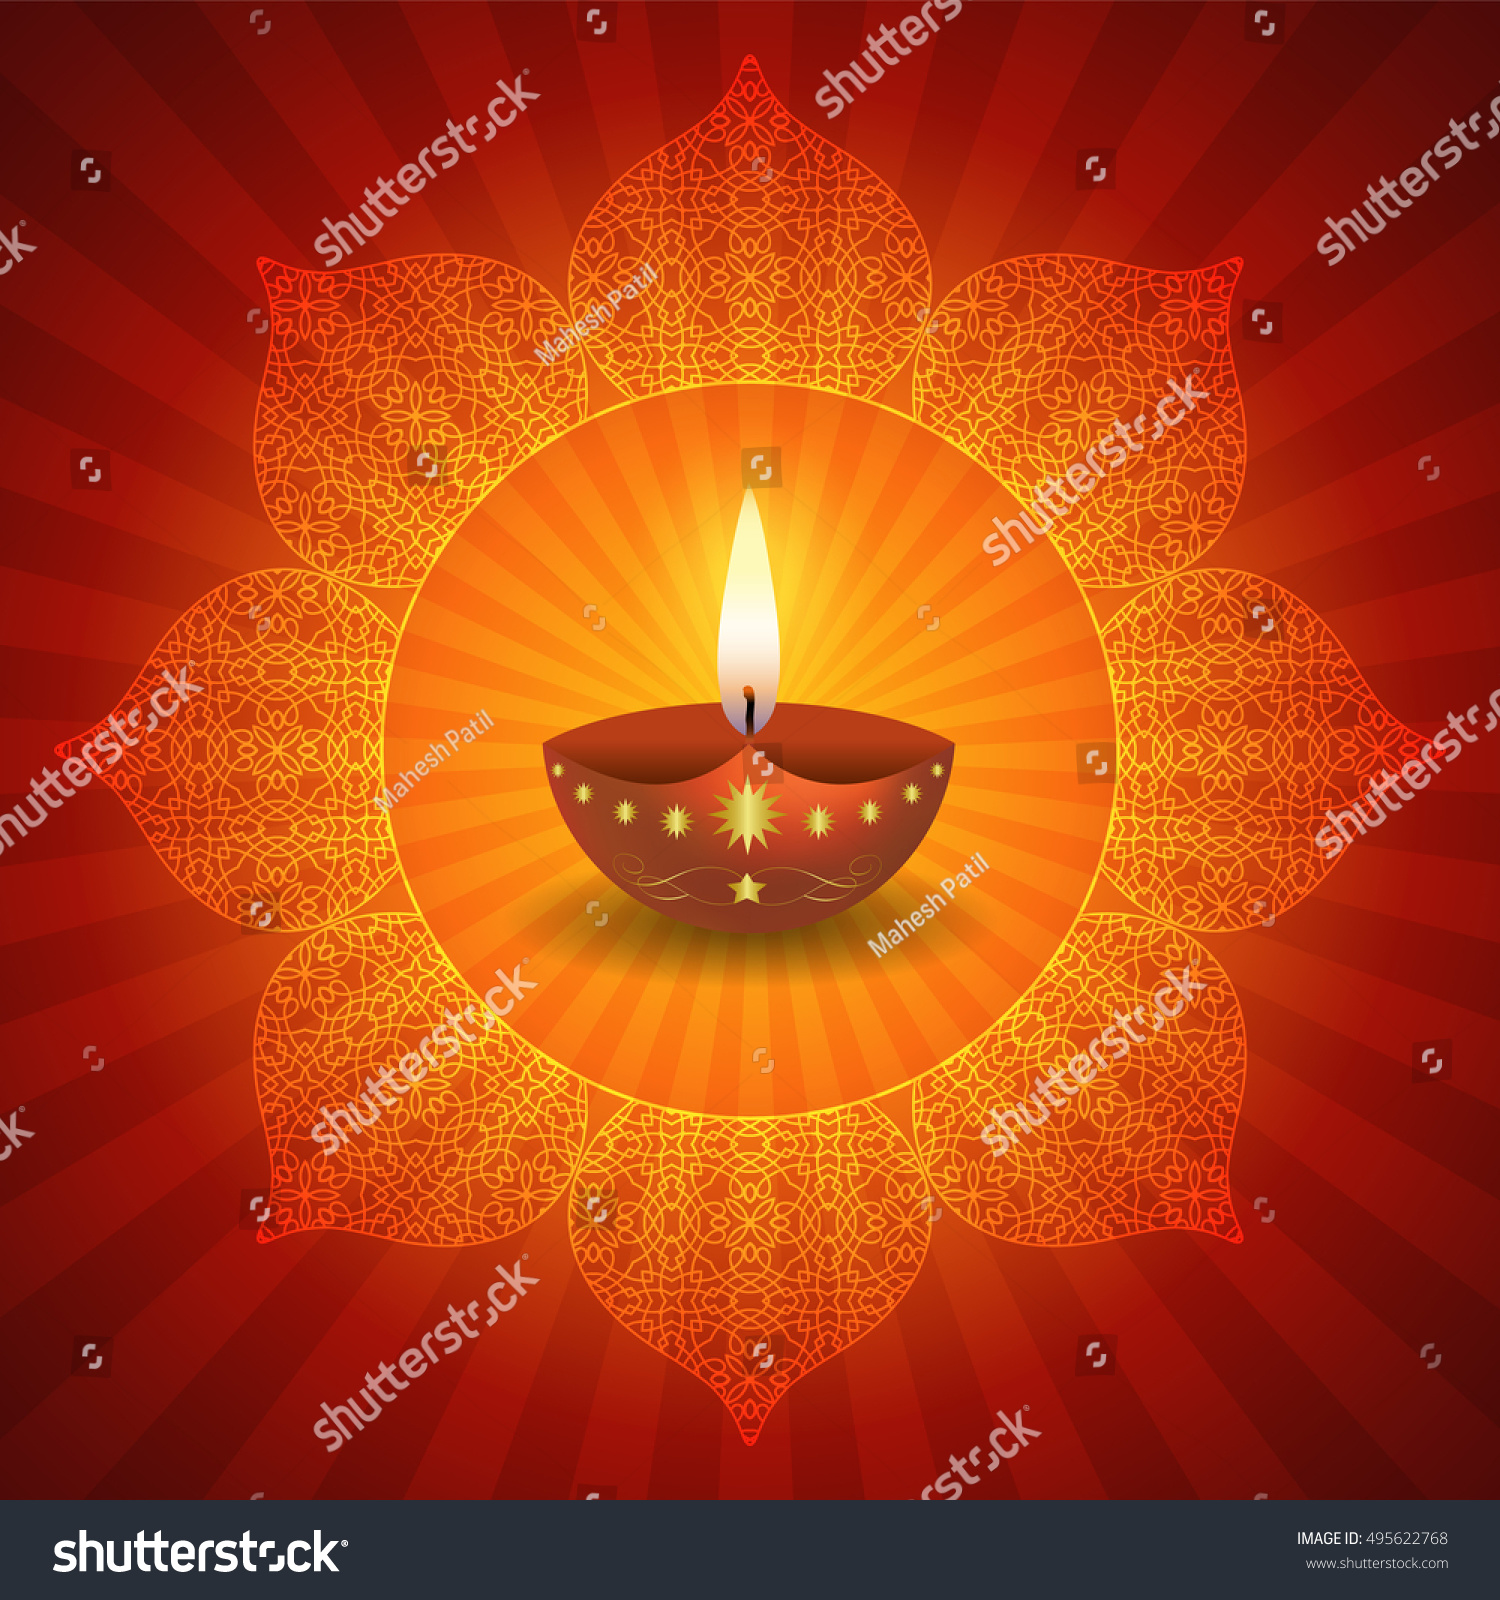 Traditional Diwali Lamps On Decorative Lotus Stock Vector ... for Diwali Lamps Designs  117dqh